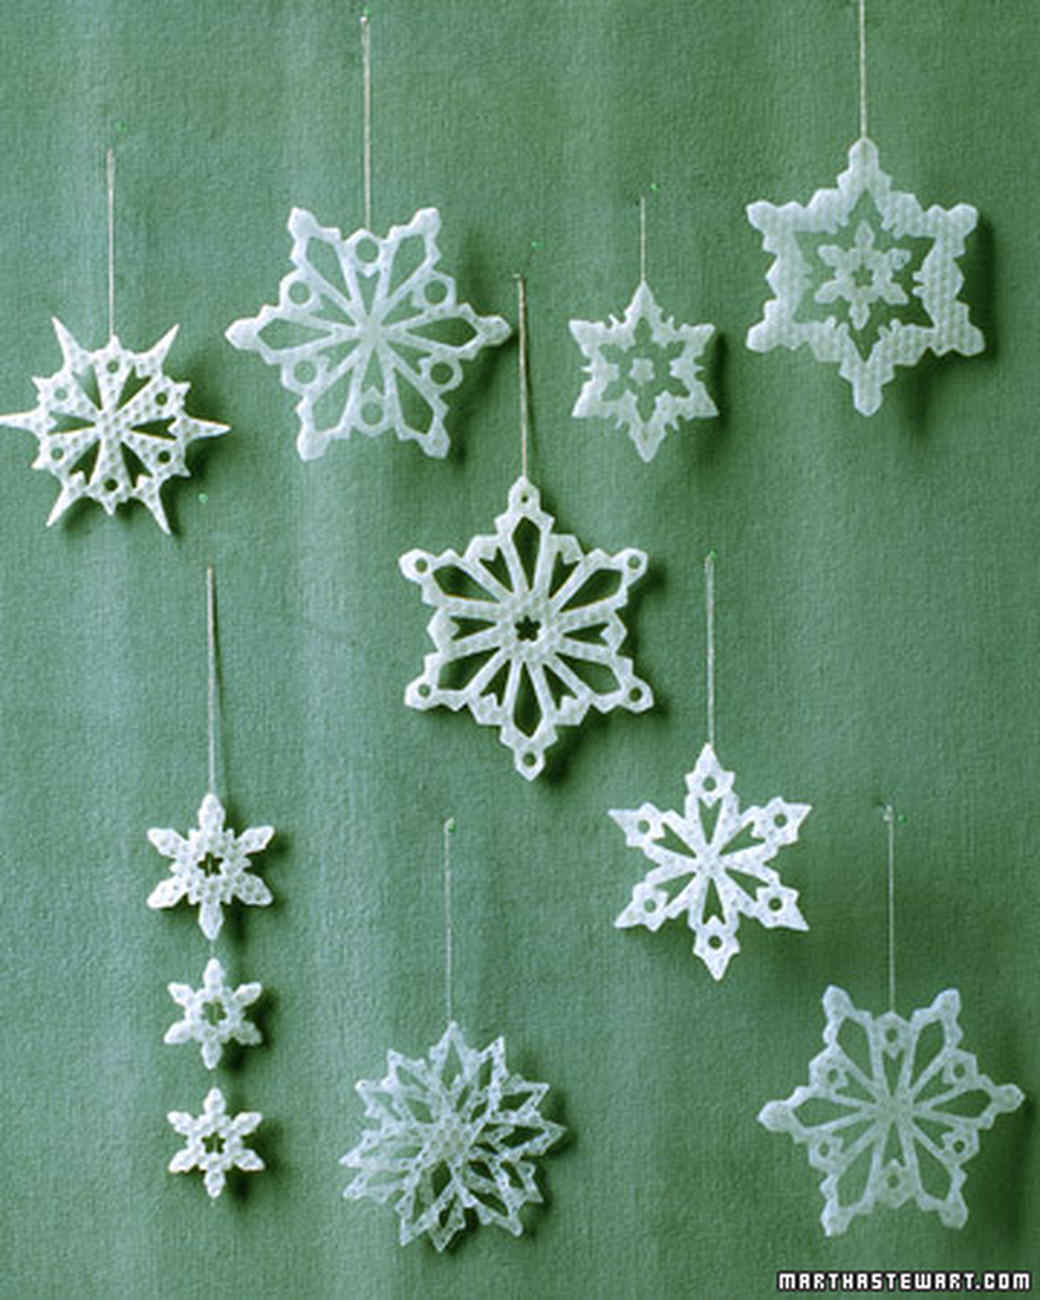 17 snowflake ornaments thatll guarantee a white christmas martha stewart - Snowflake Christmas Decorations